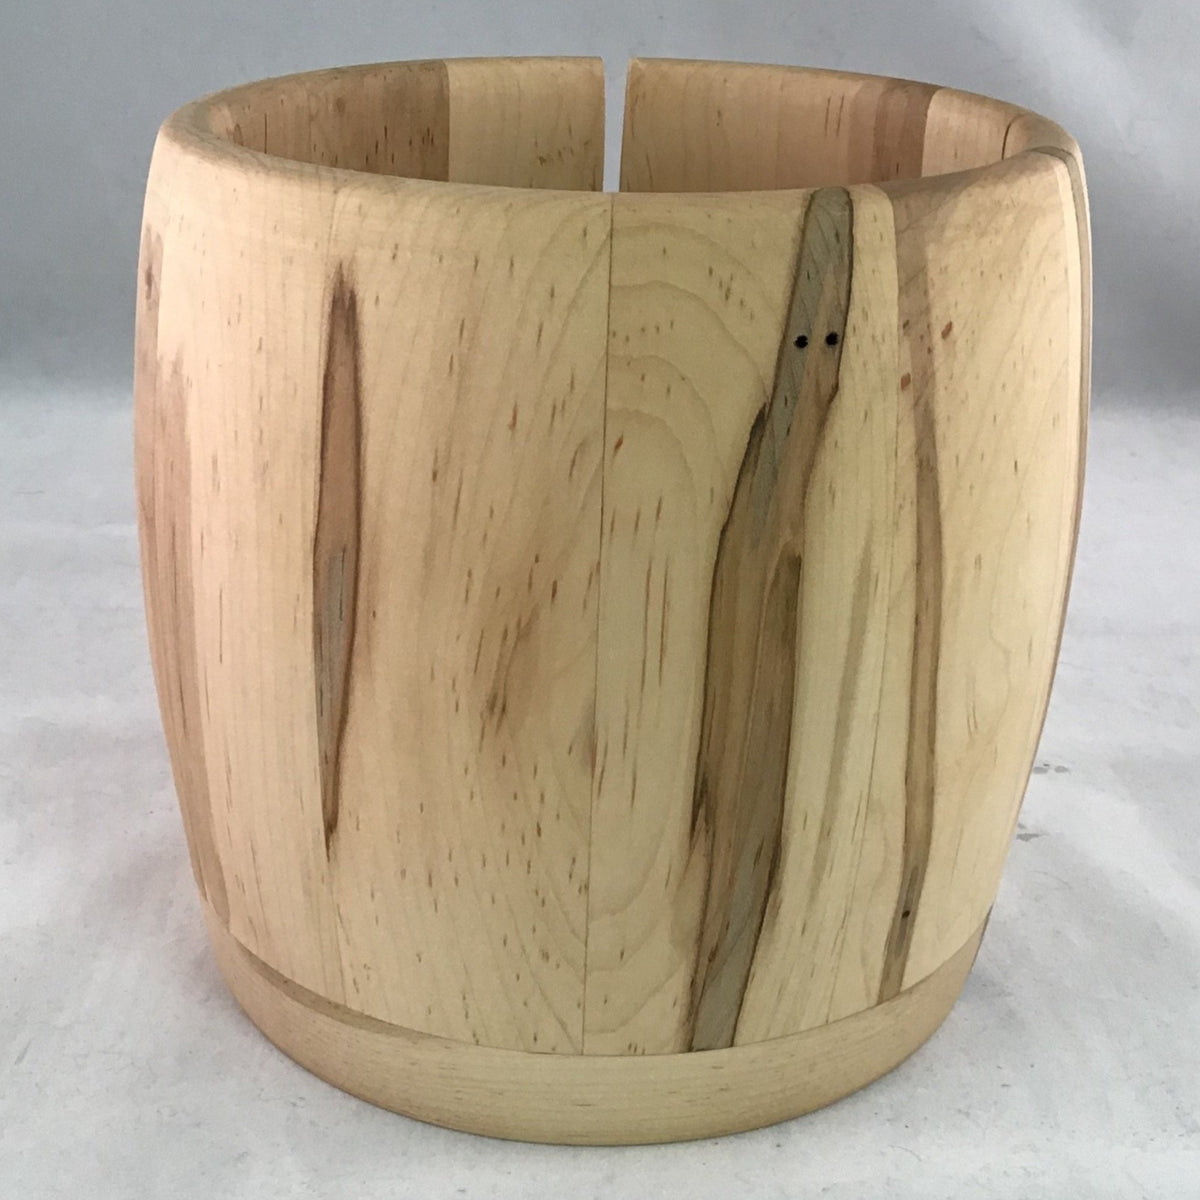 One-of-a-Kind Yarn Bowl by Jerry Ertle – Ambrosia Maple #44